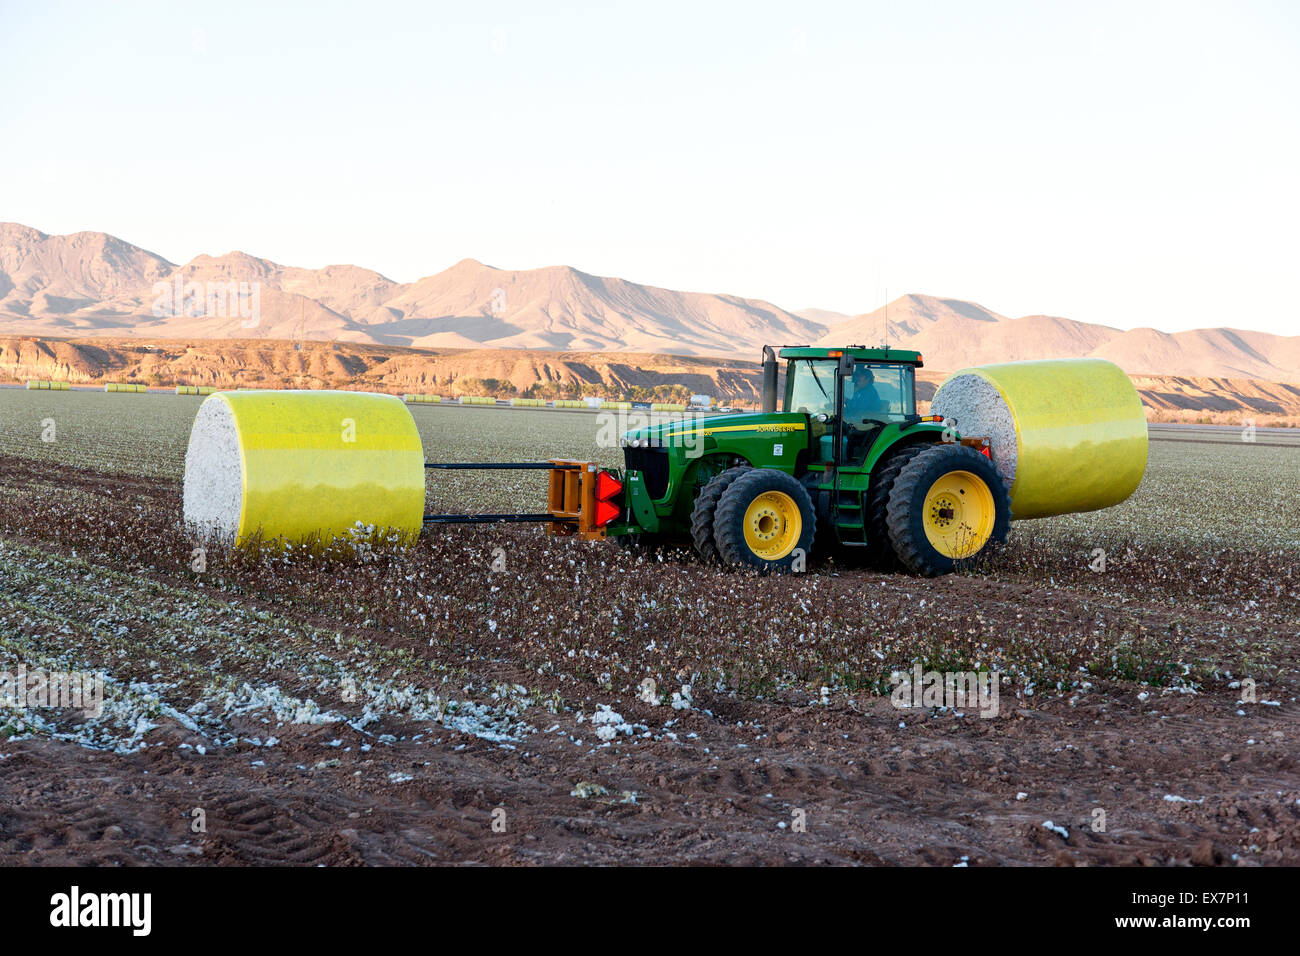 John Deere tractor transporting harvested cotton modules. - Stock Image